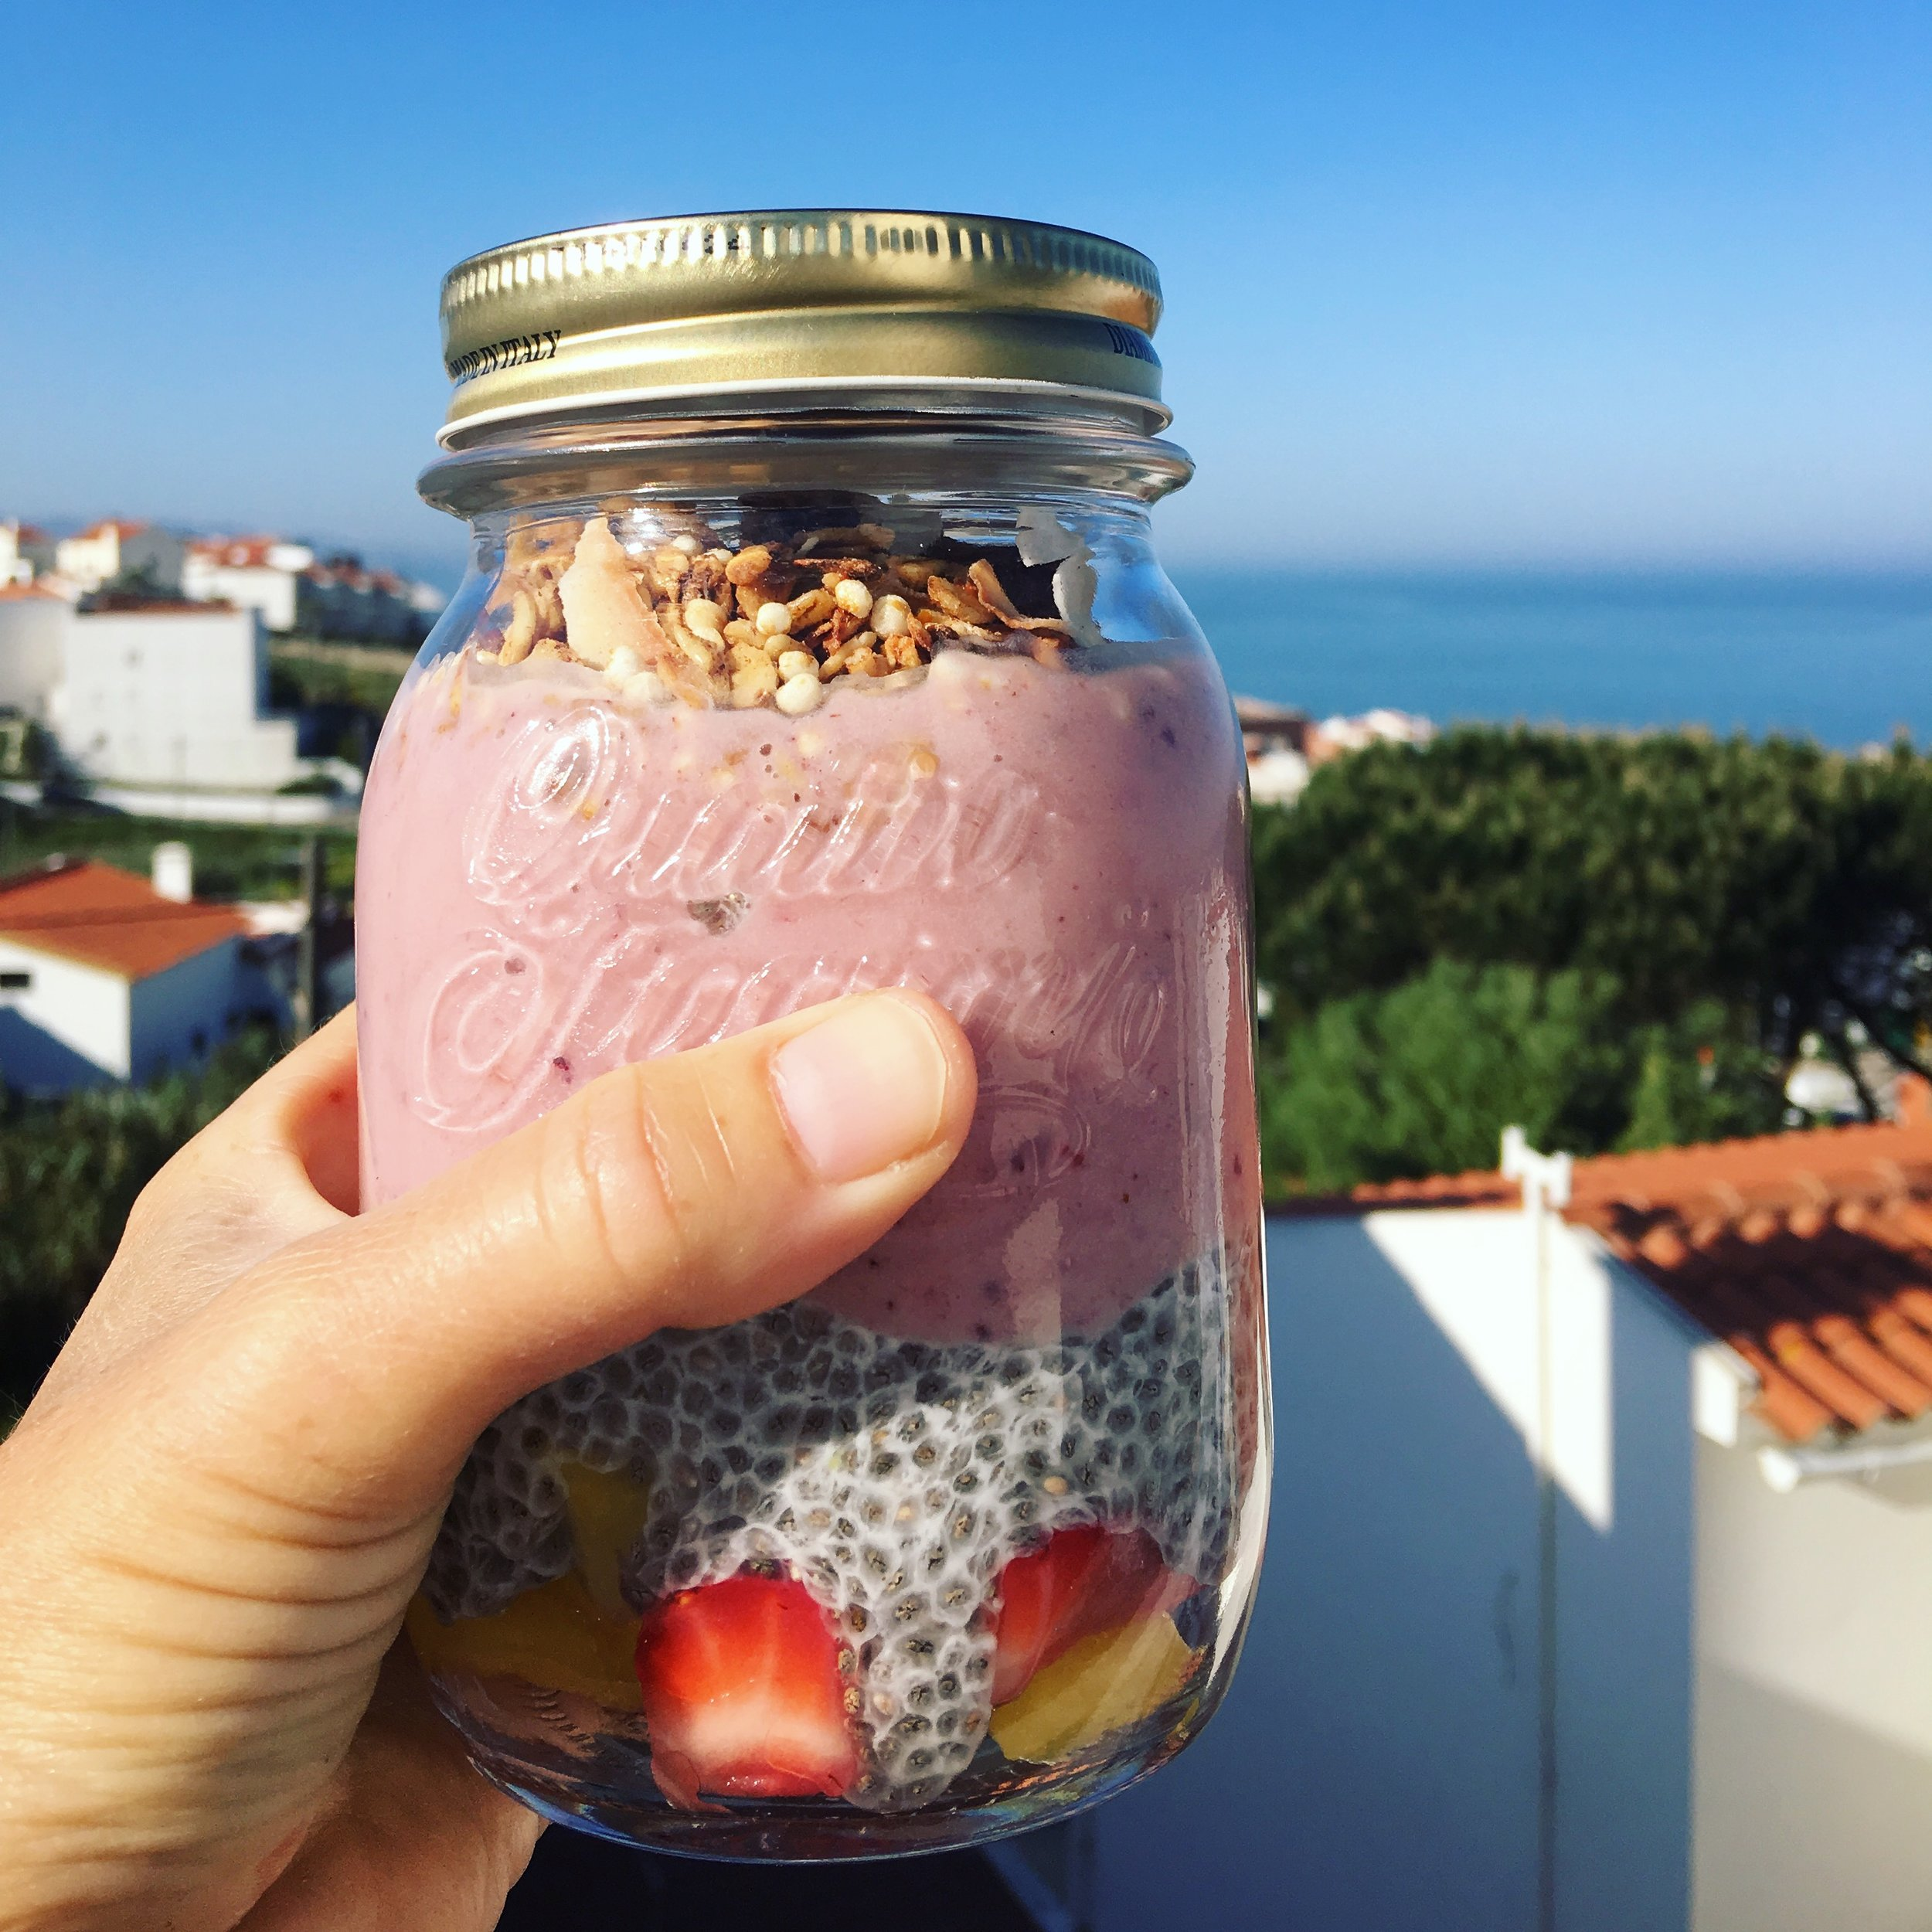 Coco Berry Chia Smoothie - Pop Up Yoga & Brunch Ericeira